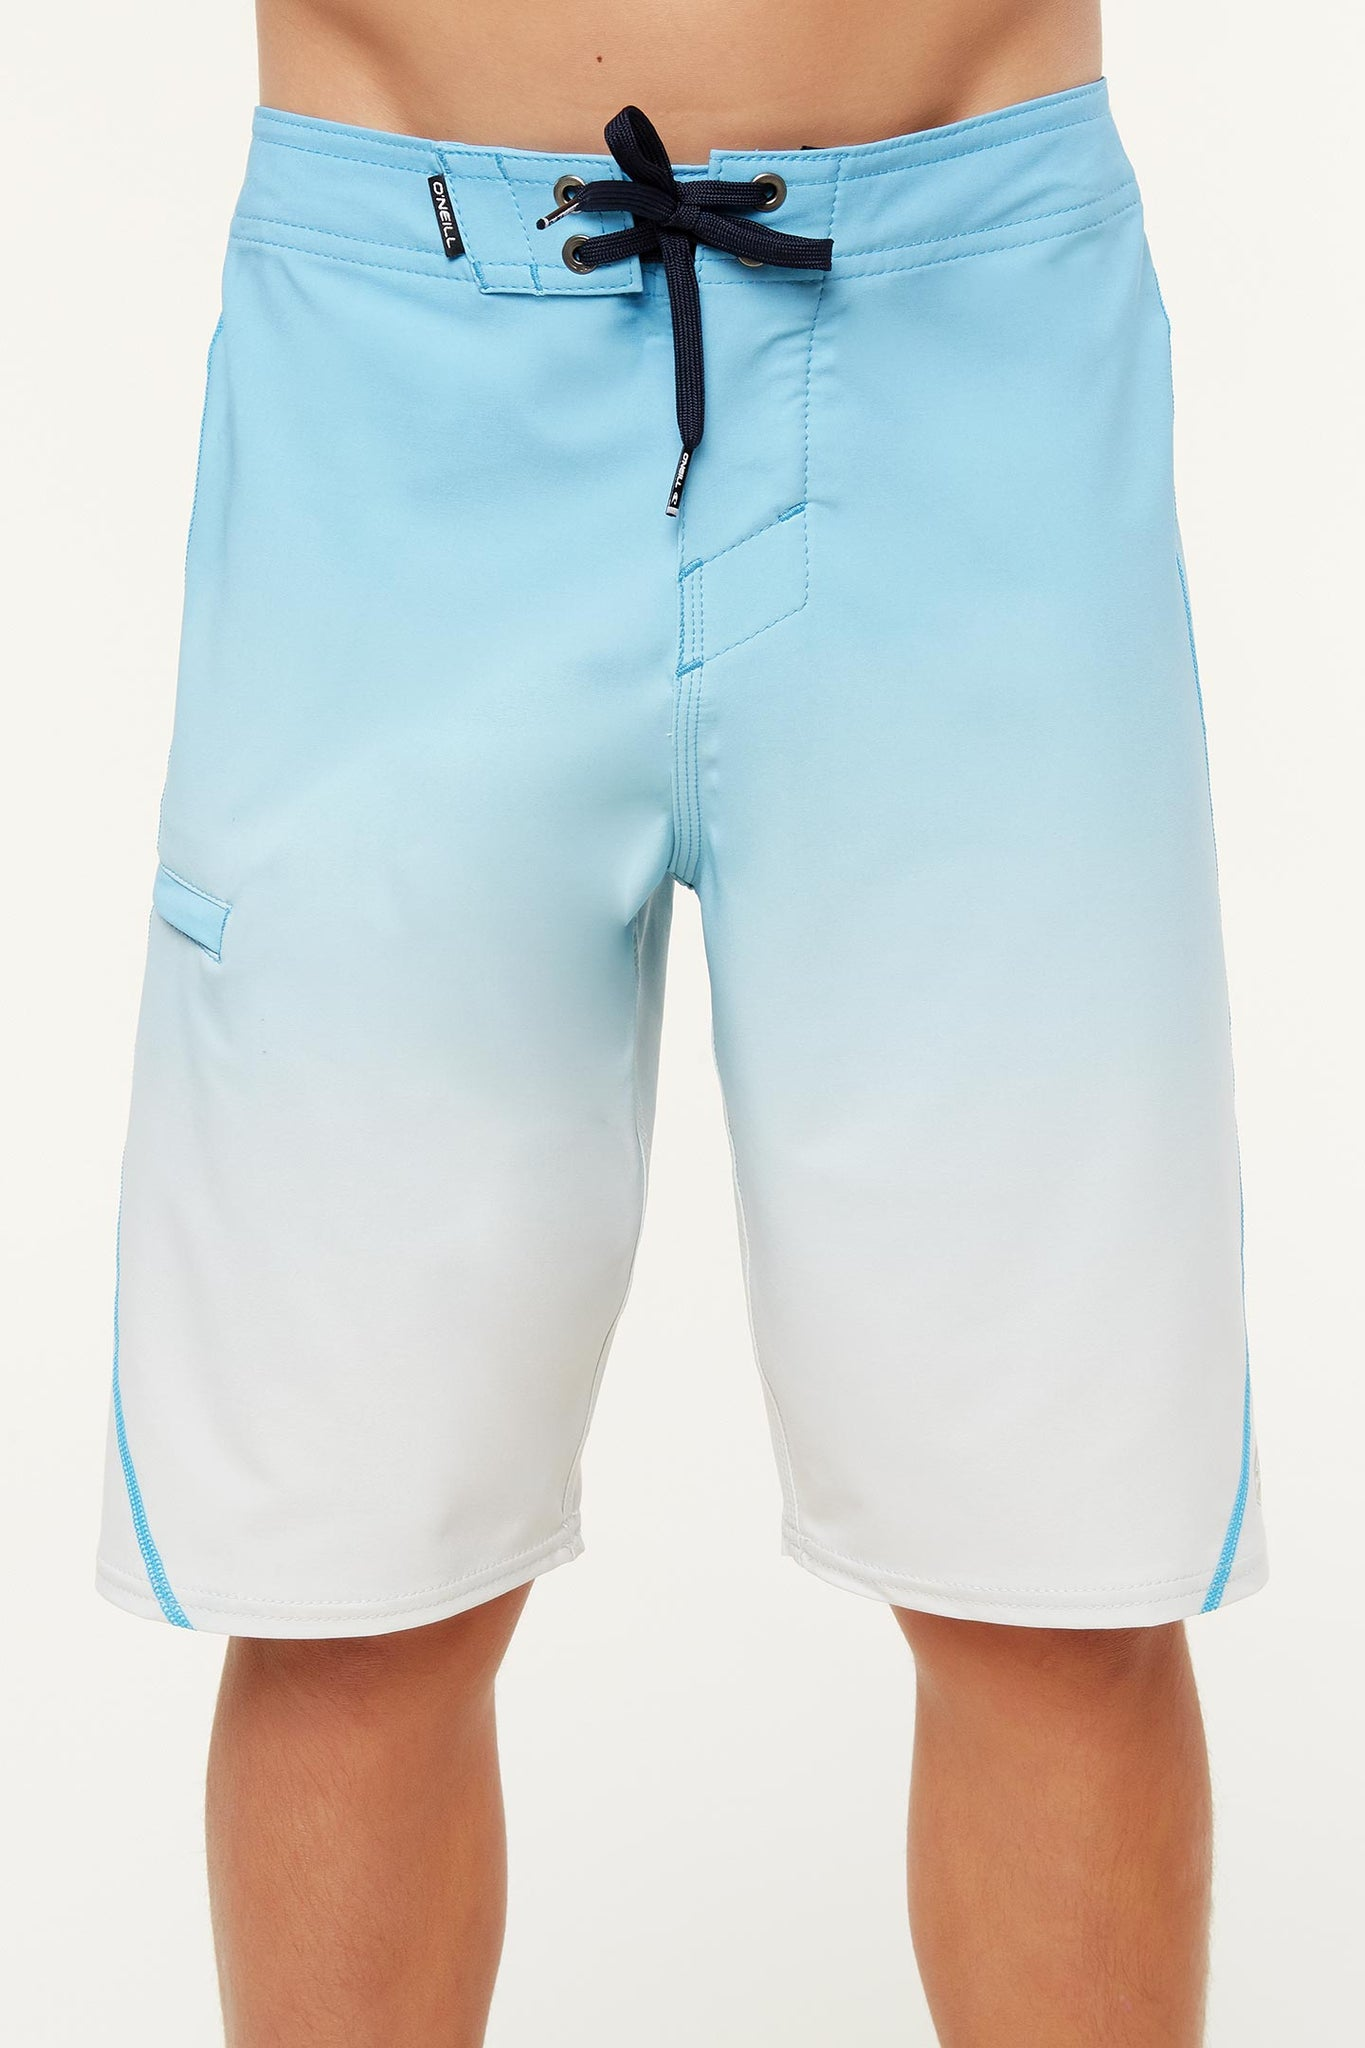 BOYS HYPERFREAK S SEAM BOARDSHORTS